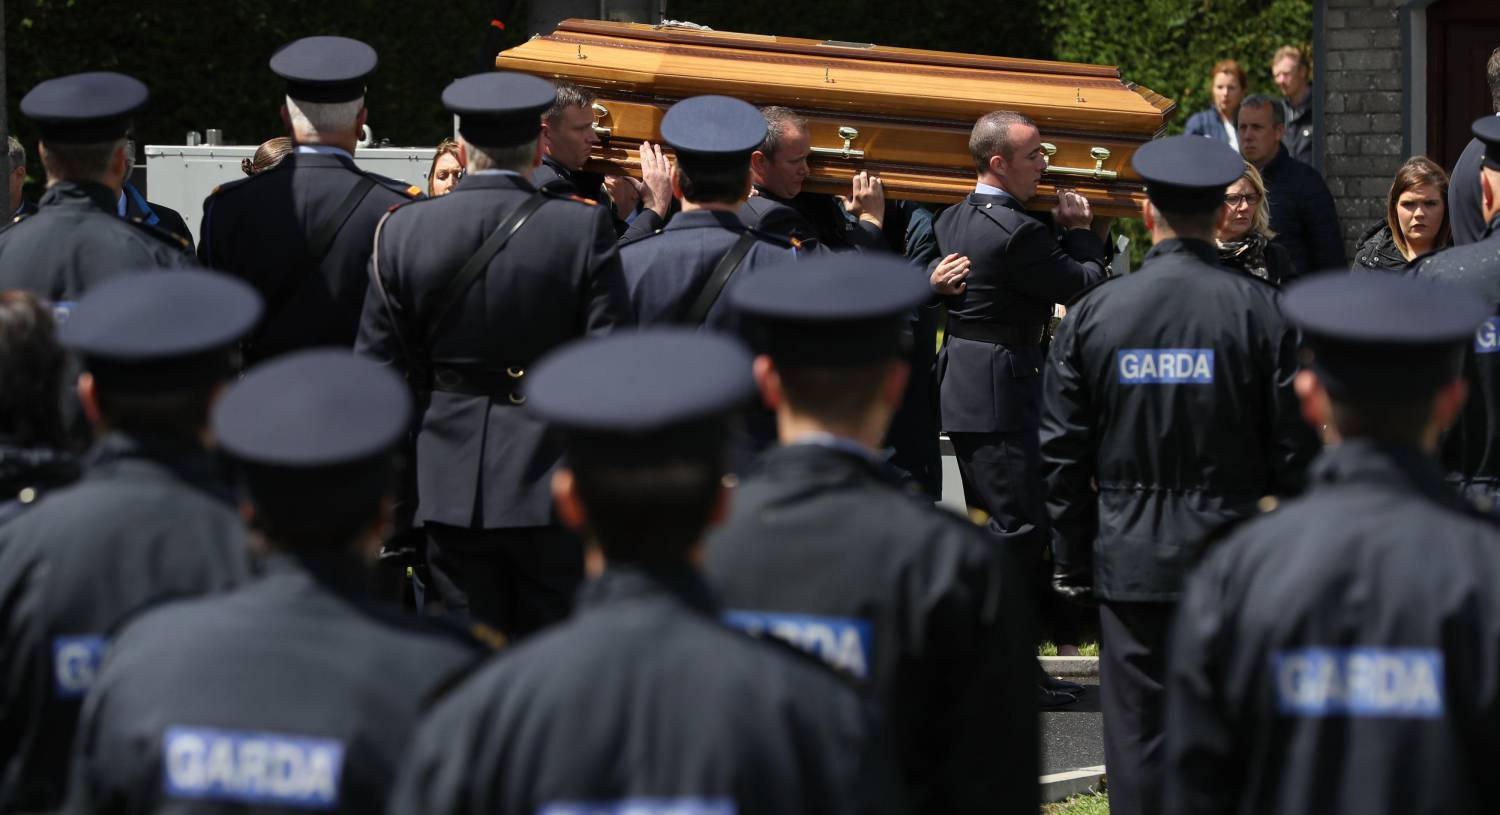 Dáil pays tribute to 'loyal friend' and 'brave colleague' Colm Horkan